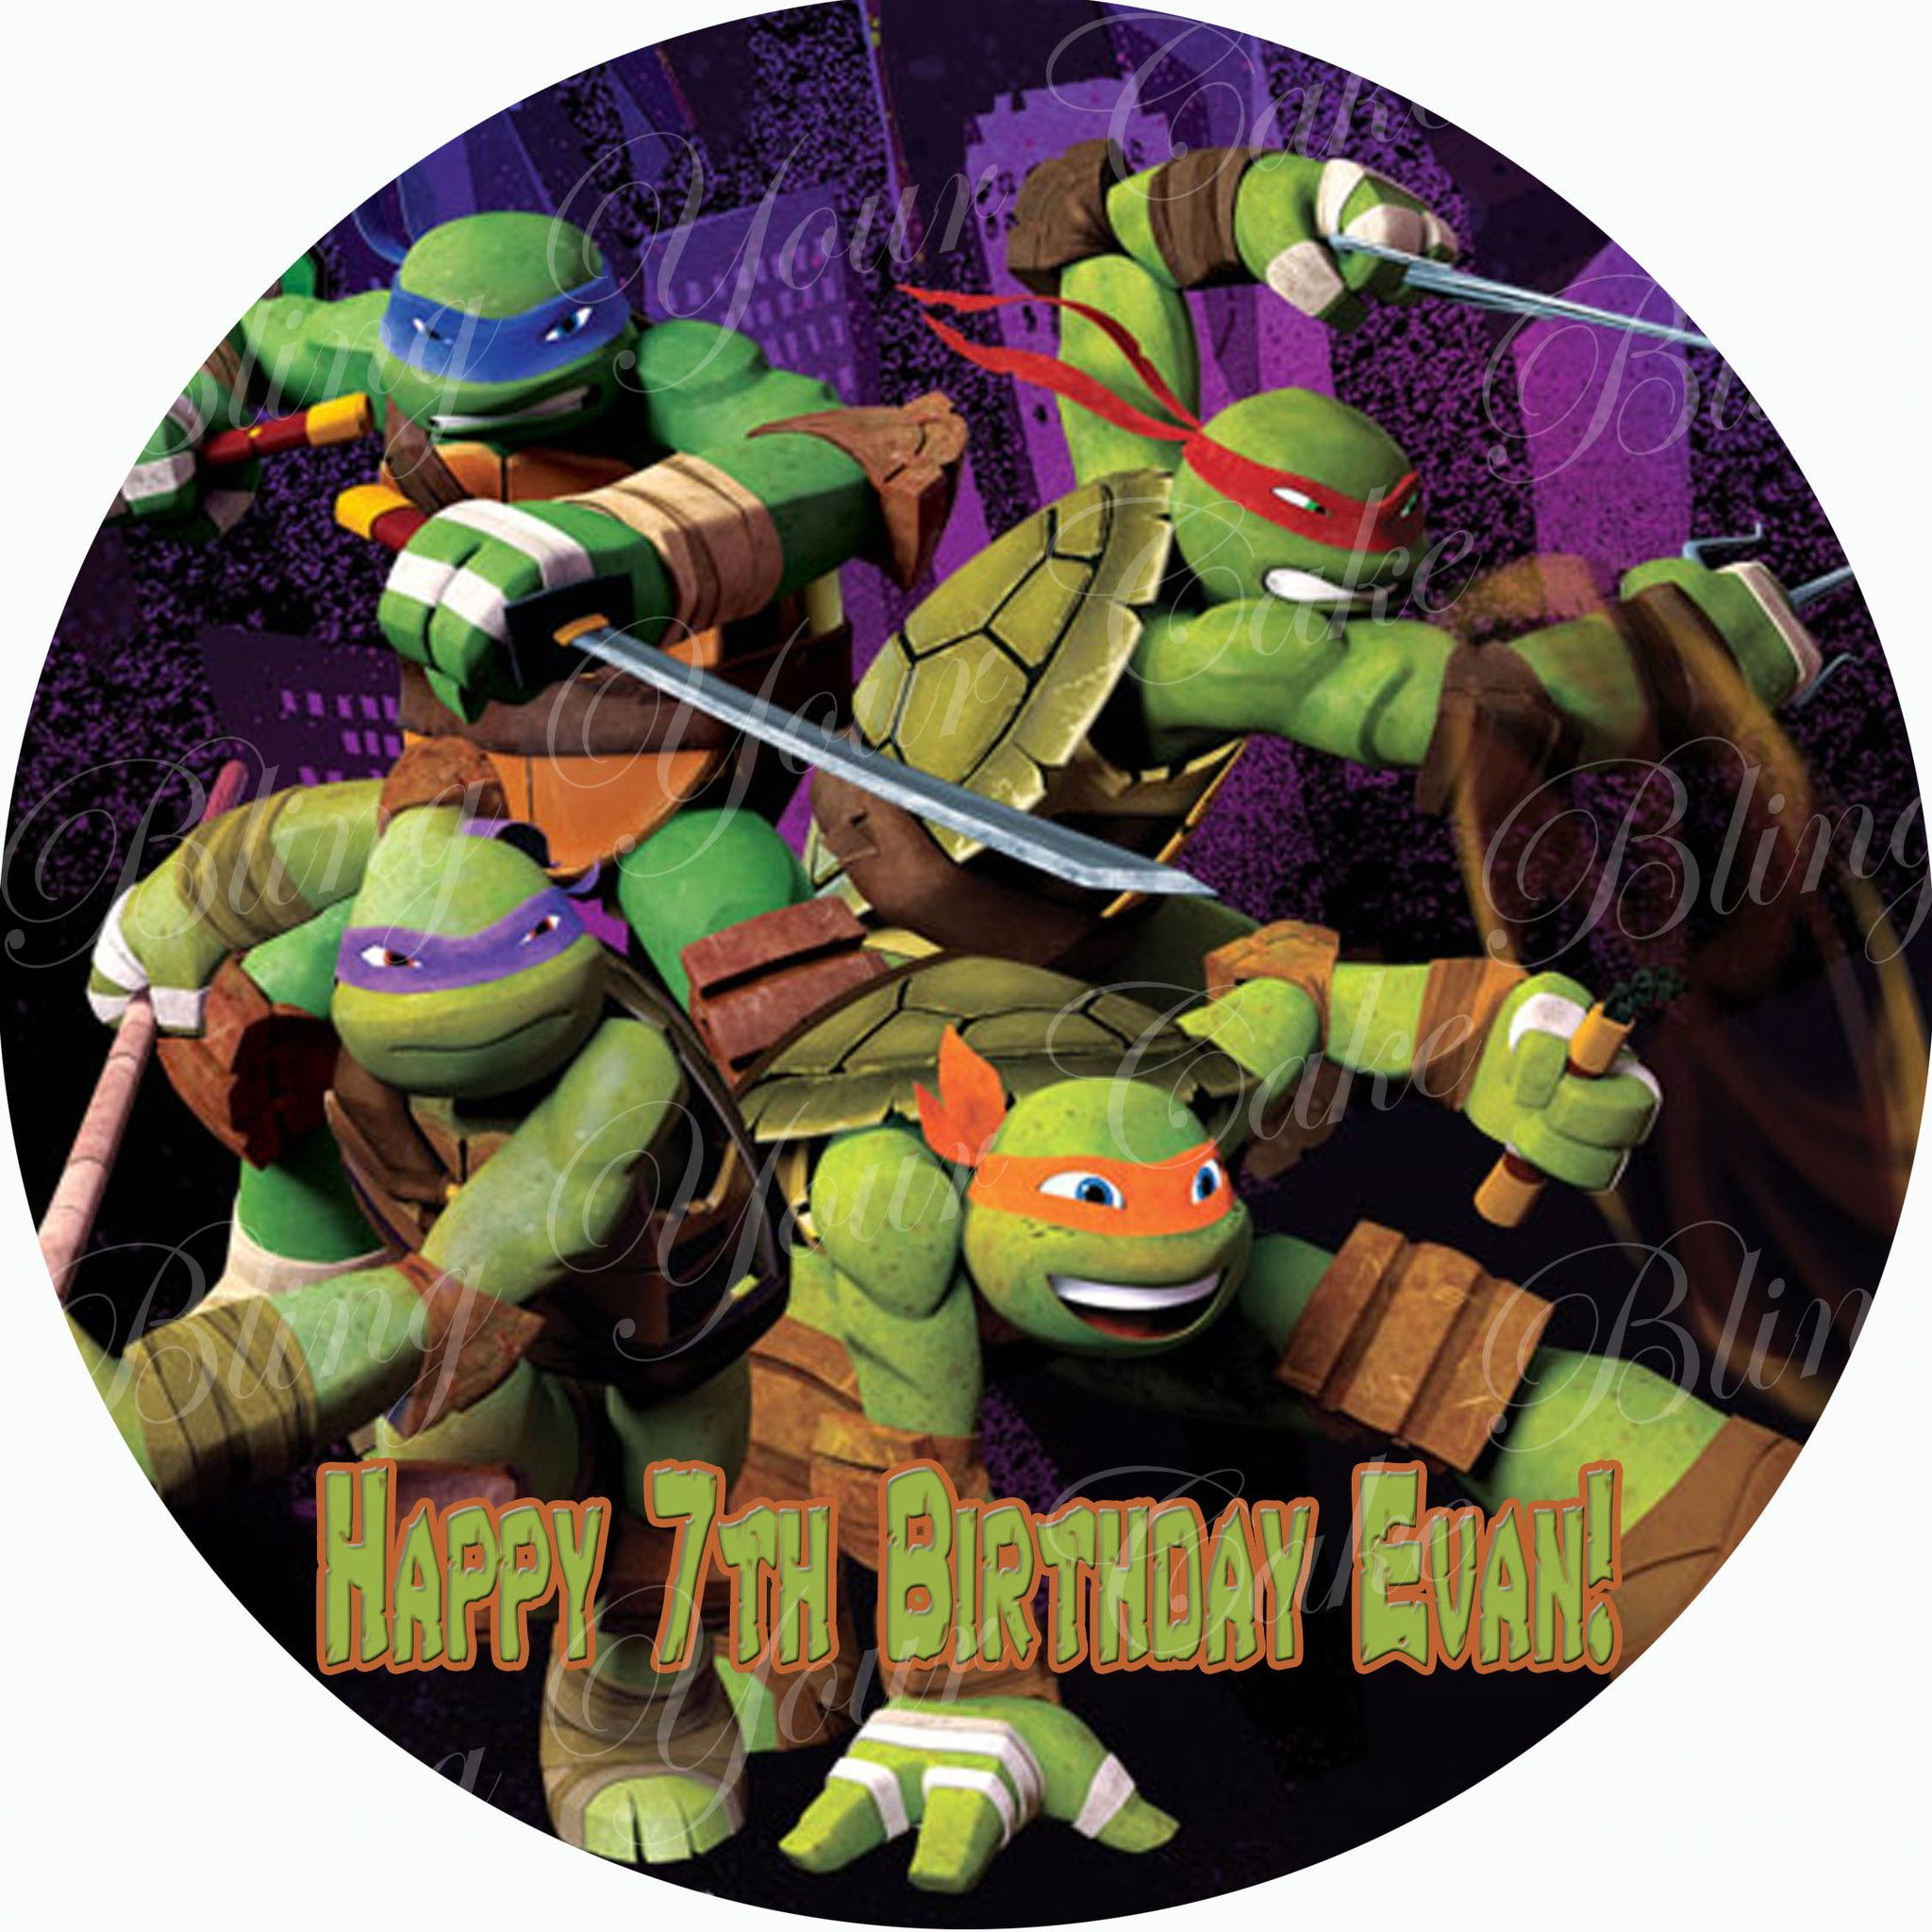 Teenage Mutant Ninja Turtles Tmnt Inspired Edible Icing Round Cake Decor Toppers Tmnt10 Fig Cake Edible Icing Sheets Edible Images